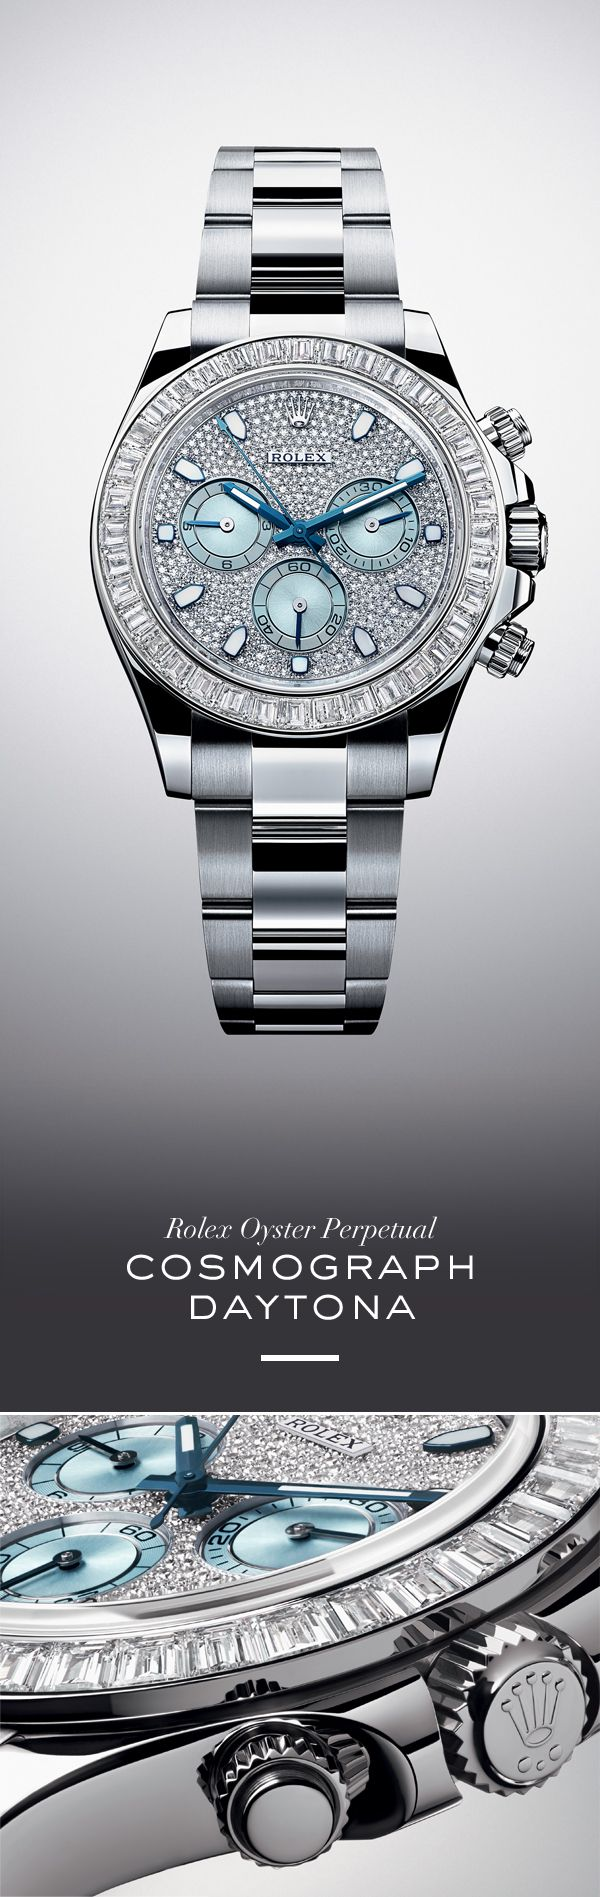 The new Rolex Cosmograph Daytona 40 mm in 950 platinum with diamond-set bezel, a diamond-paved ice blue dial and Oyster bracelet. | Rolex